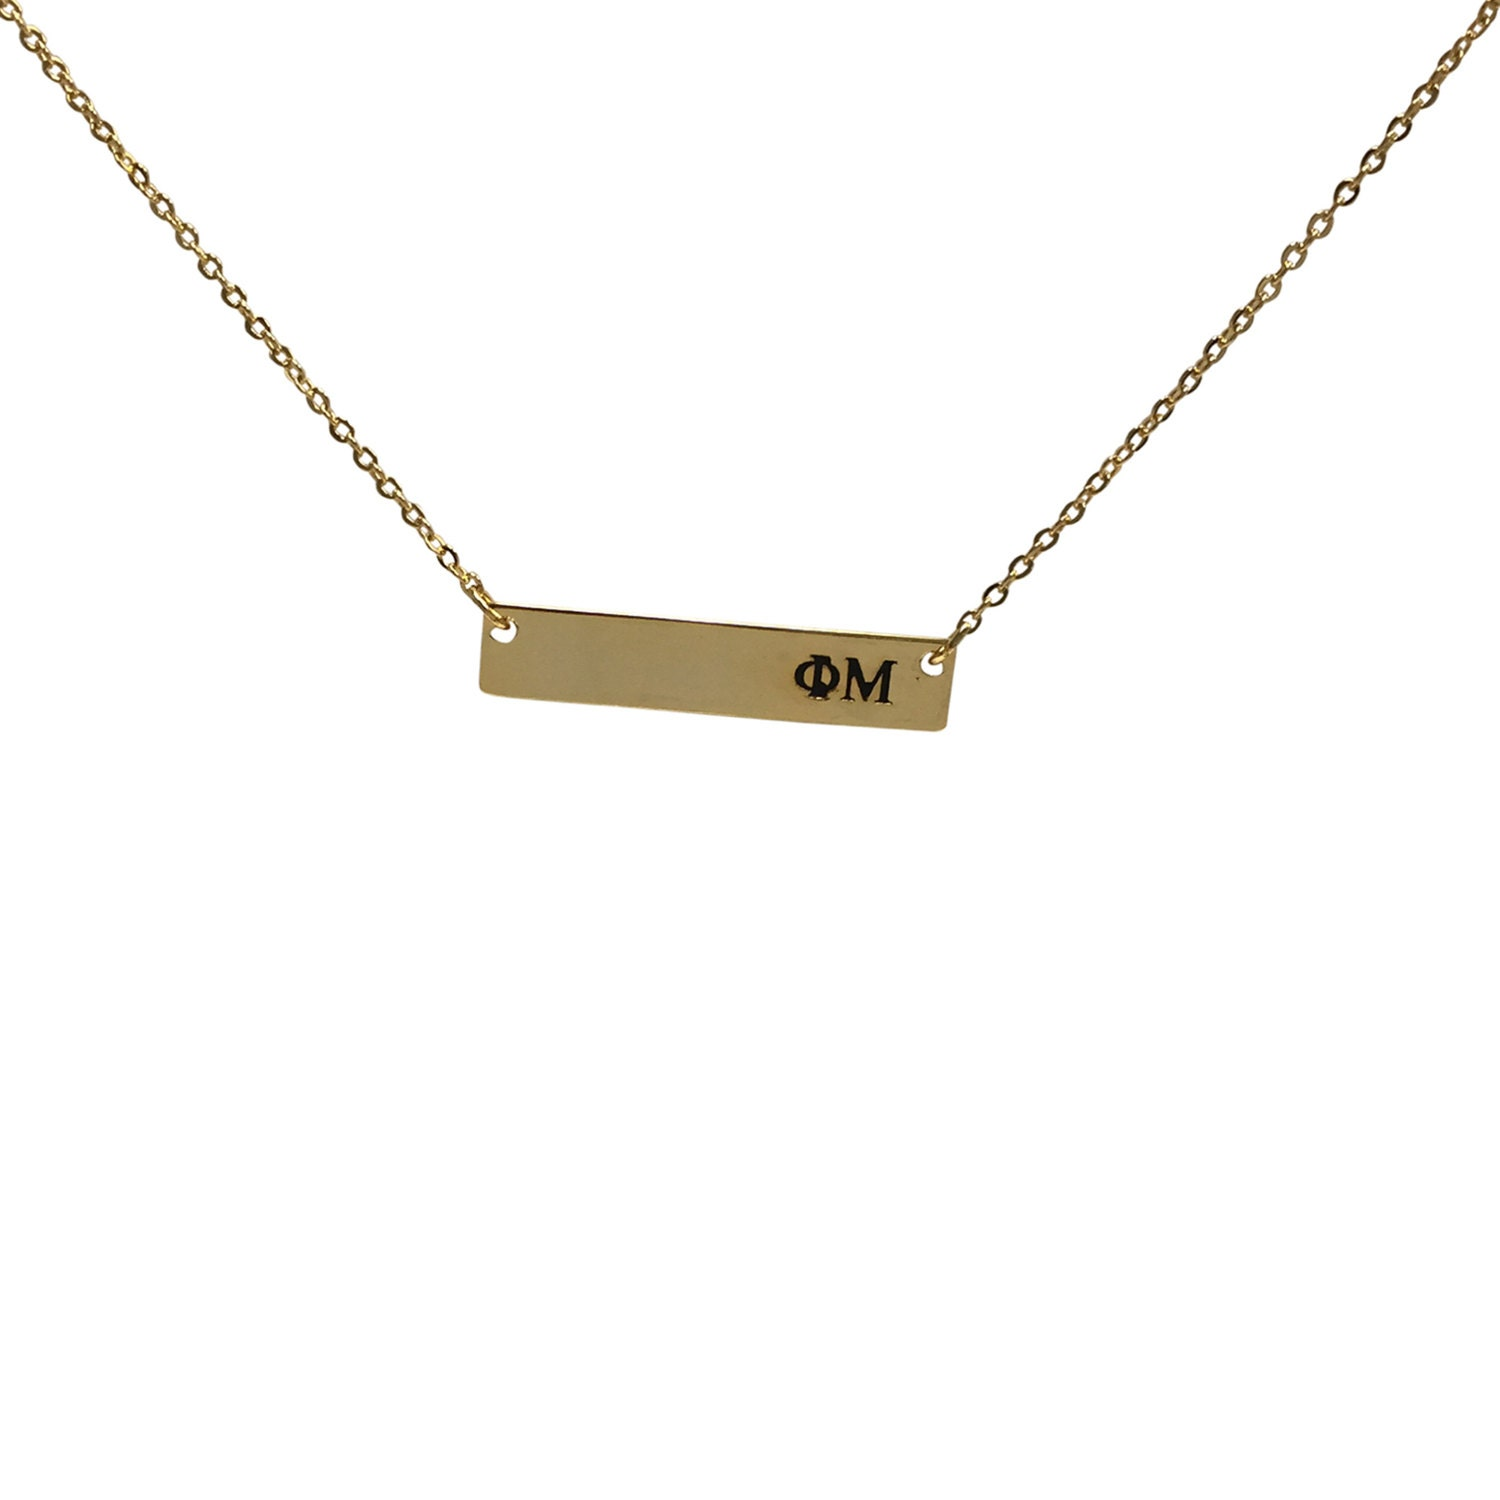 phi mu bar necklace 24k gold plated